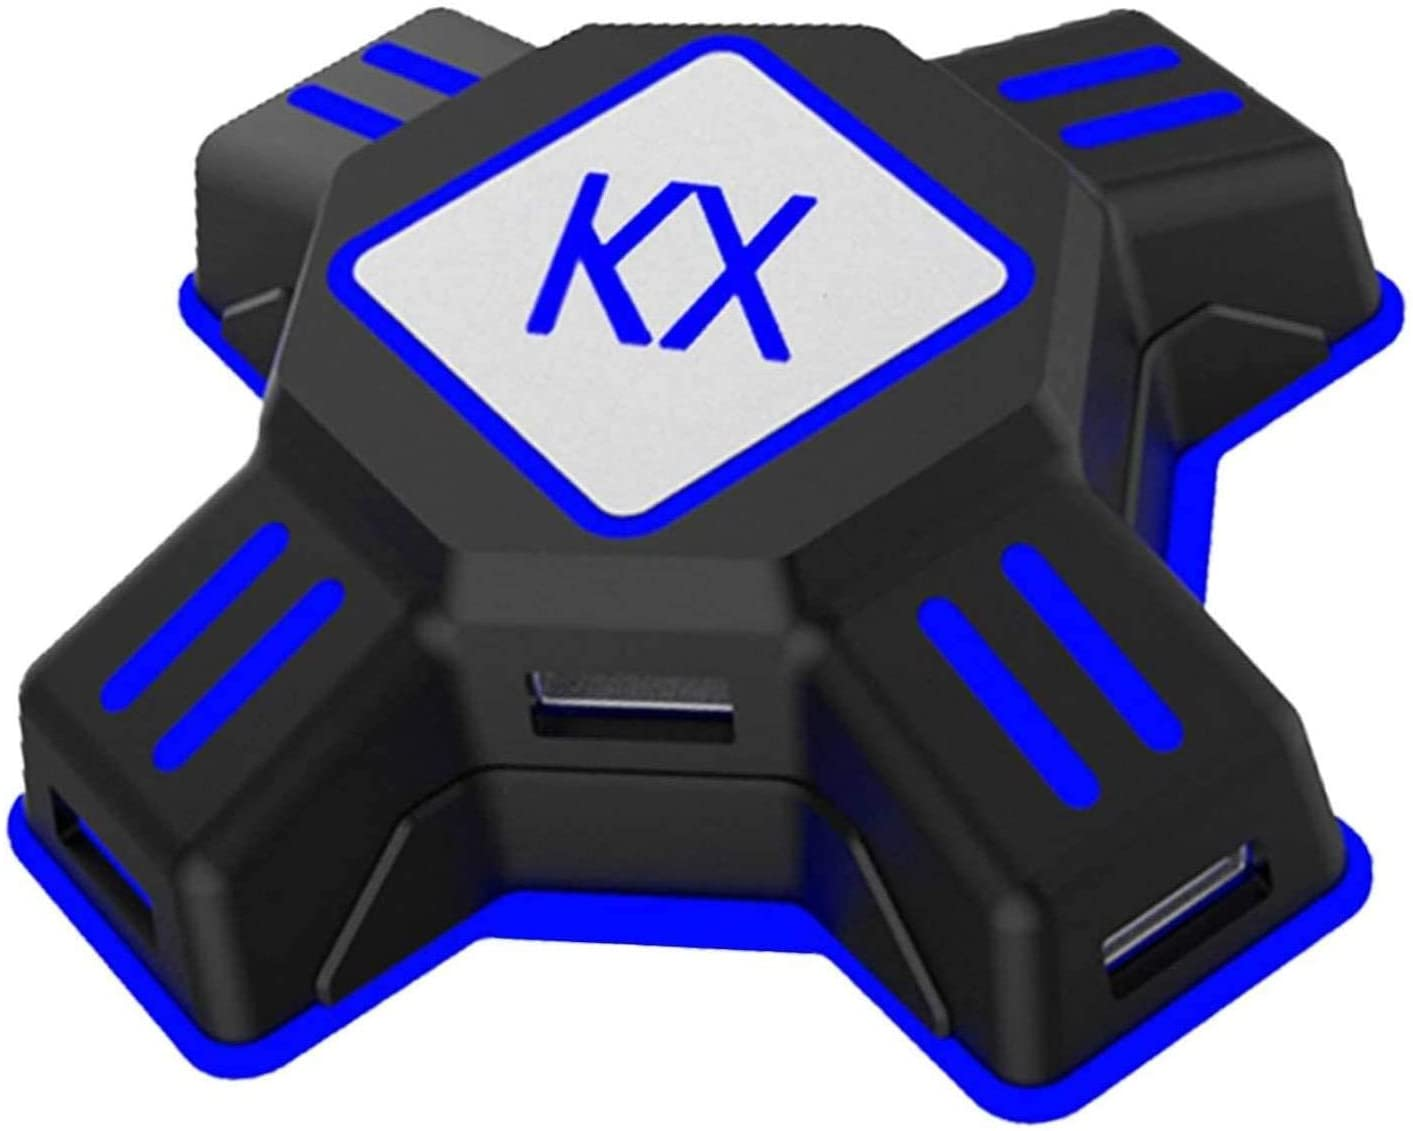 KX Keyboard Mouse Converter and Adapter